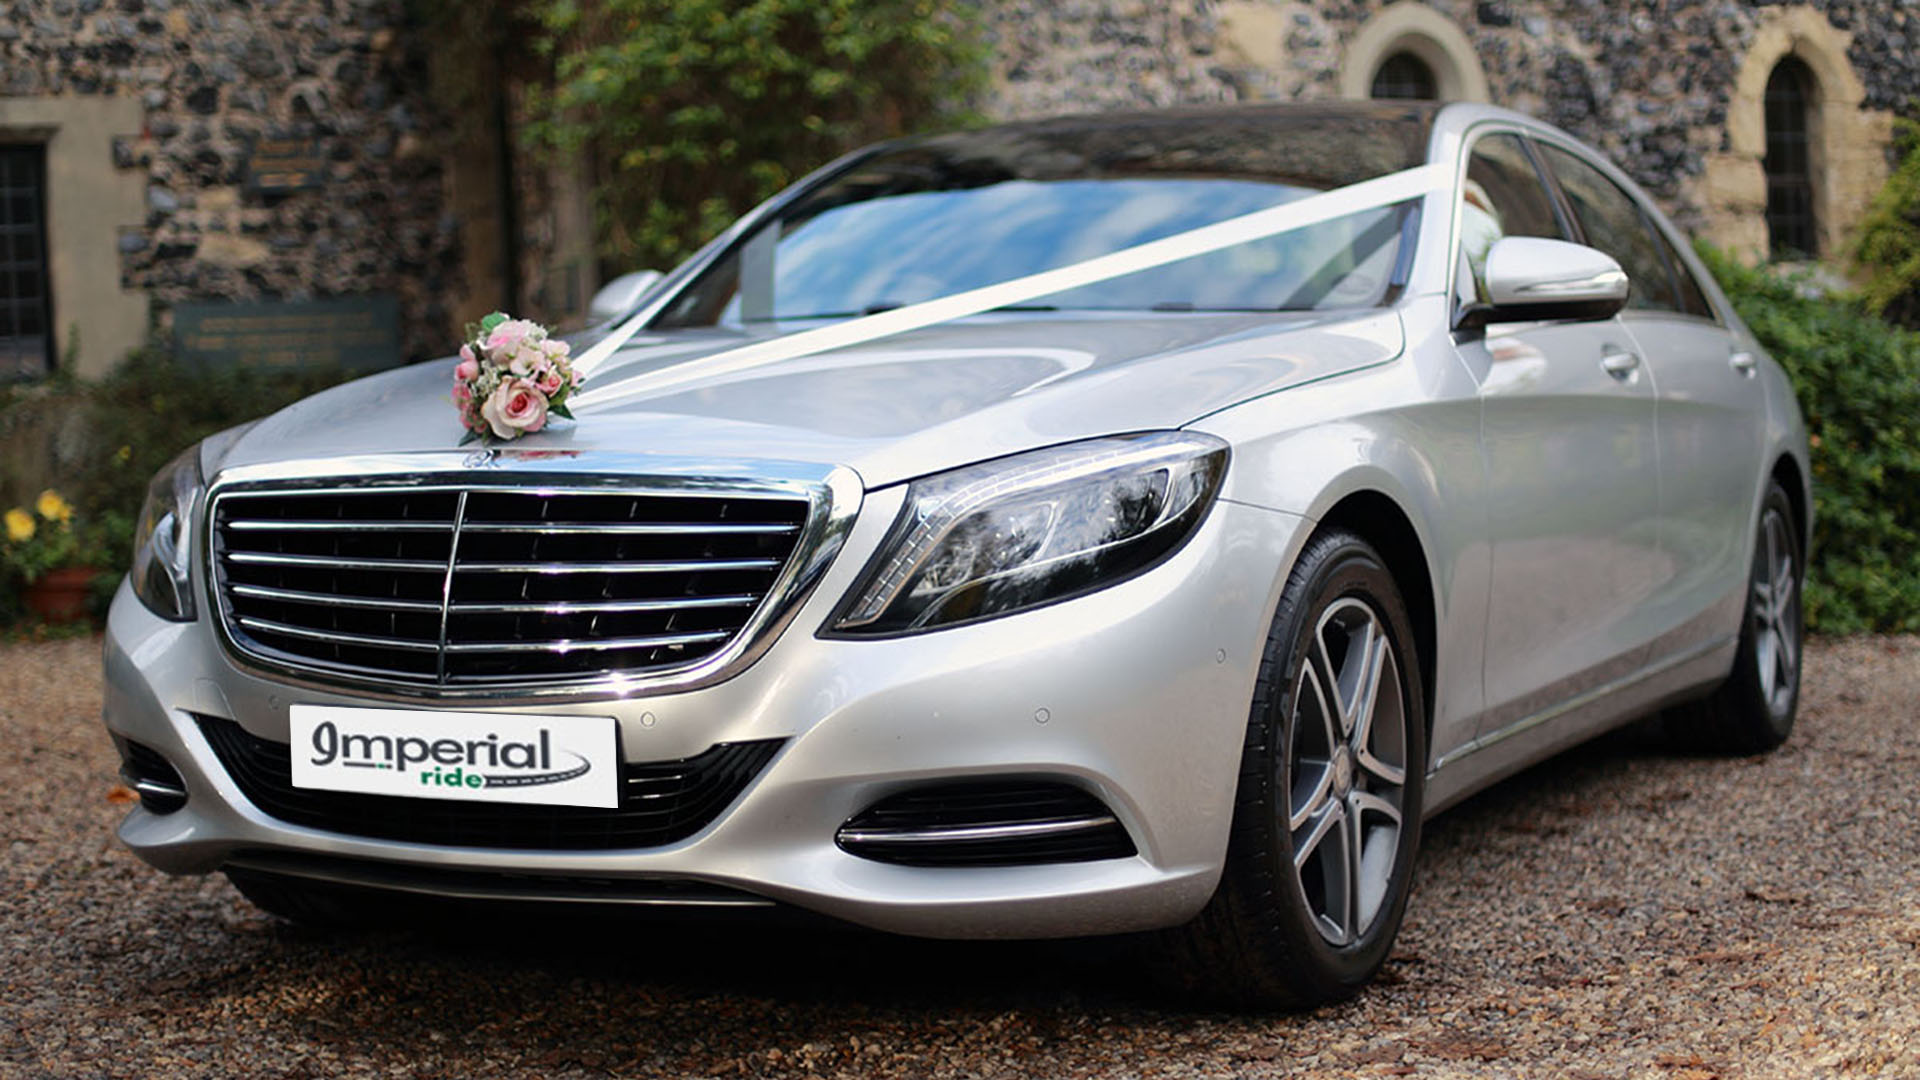 s-class-wedding-hire-in-redbridge